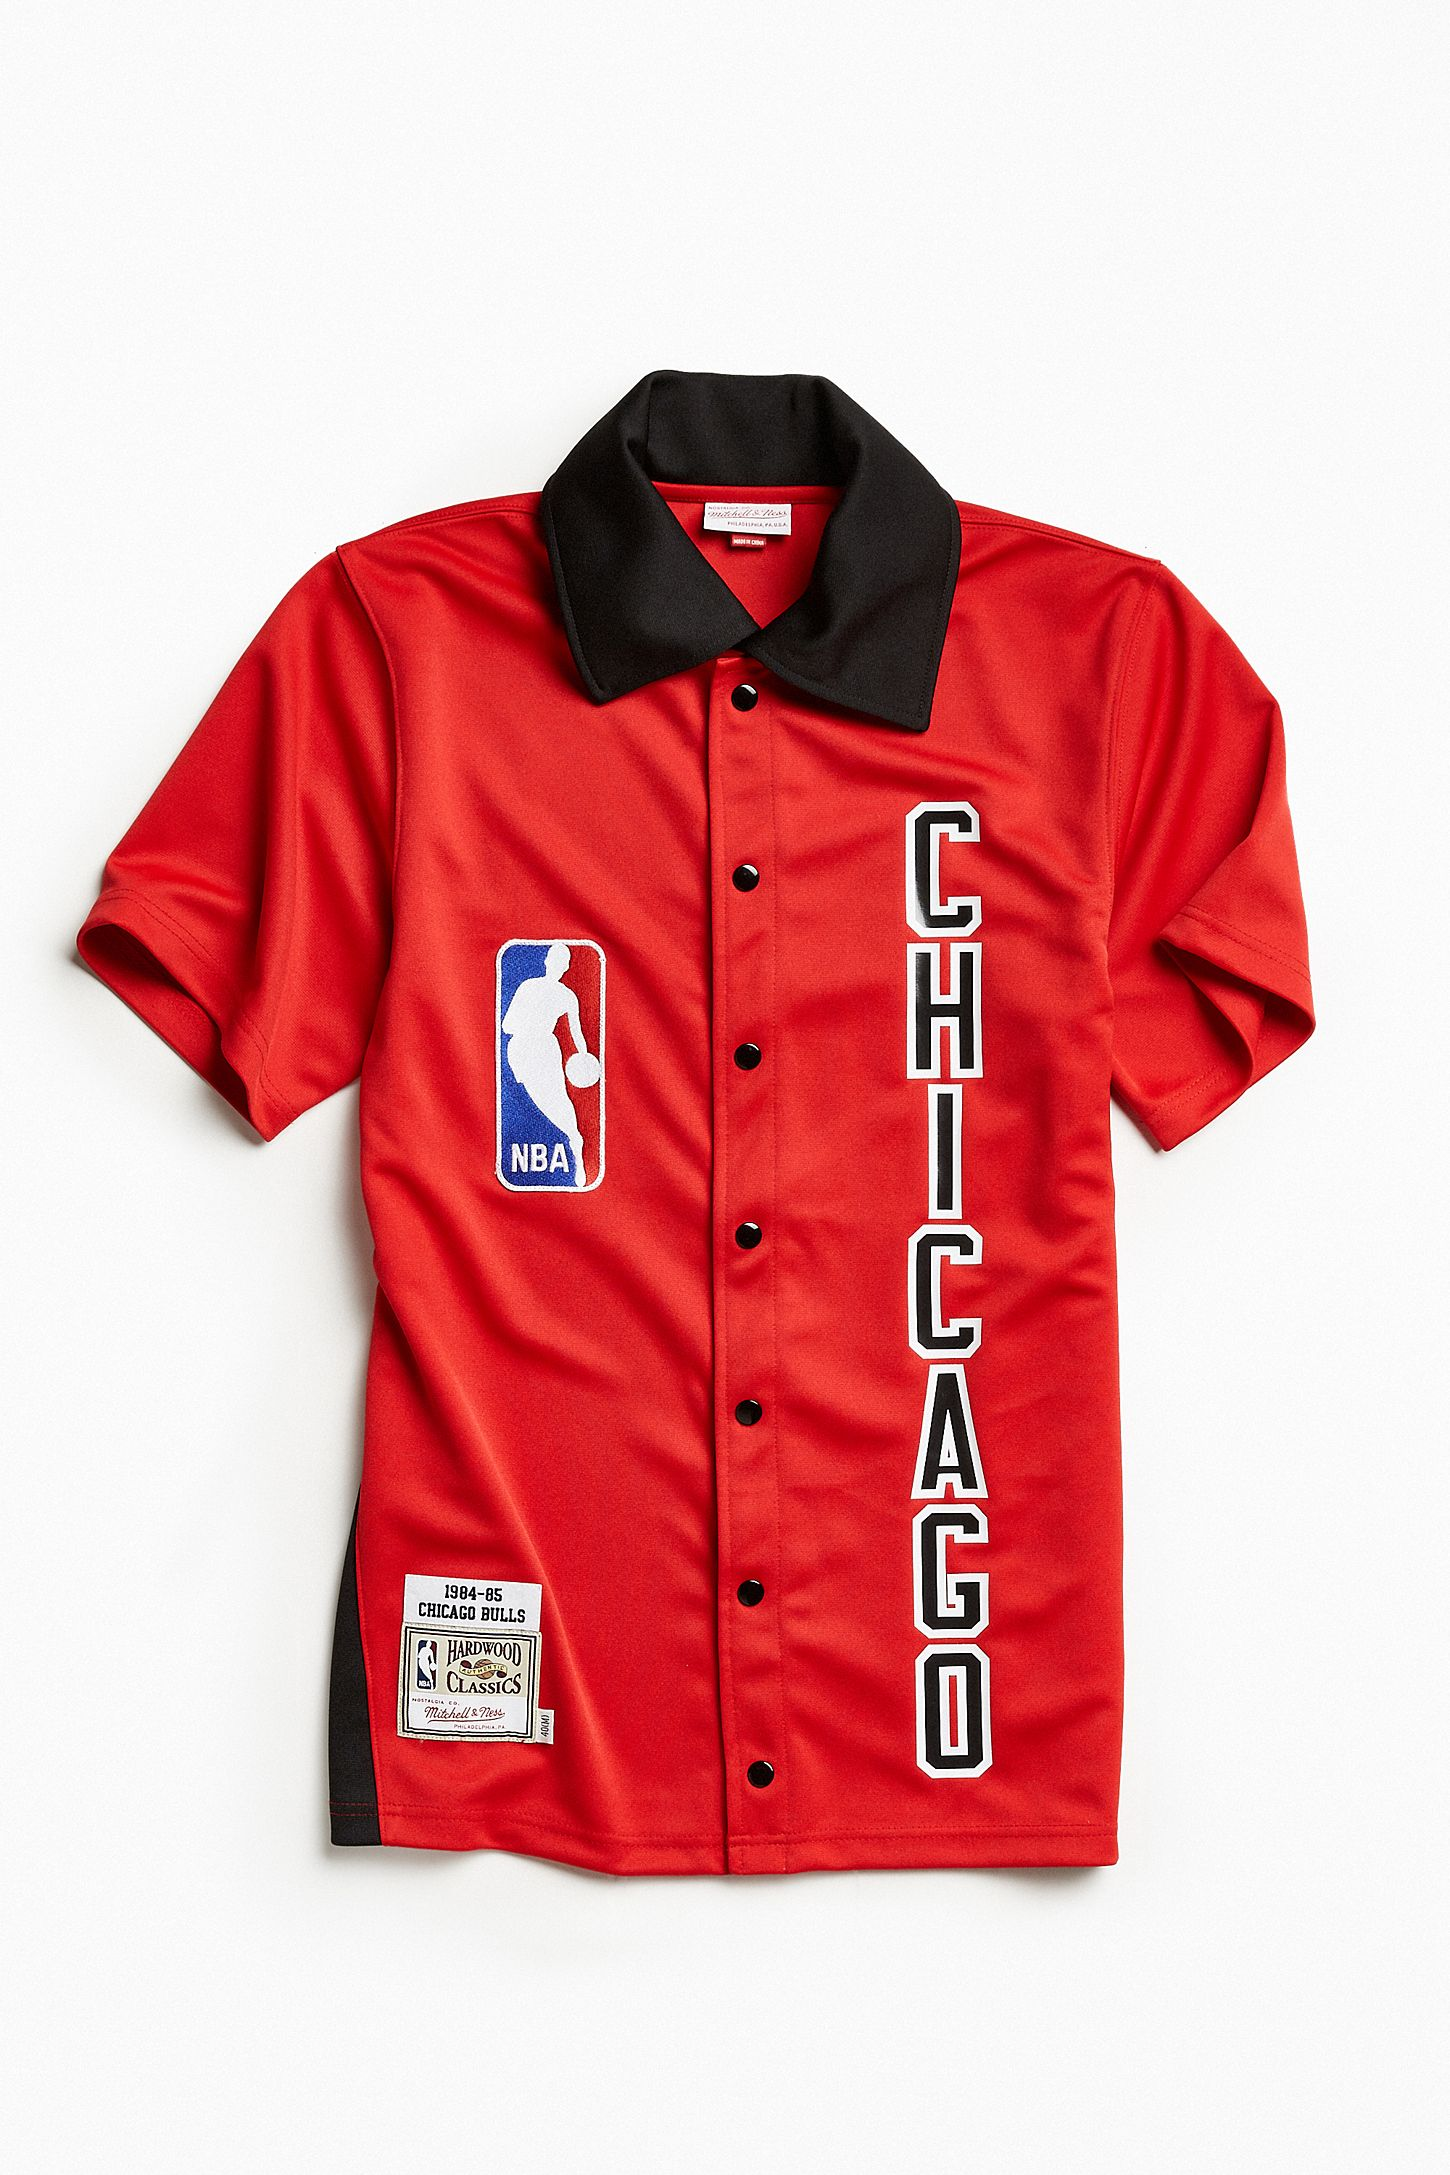 4b68a4e72 Mitchell   Ness Authentic NBA Chicago Bulls Shooting Shirt. Tap image to  zoom. Hover to zoom. Double Tap to Zoom